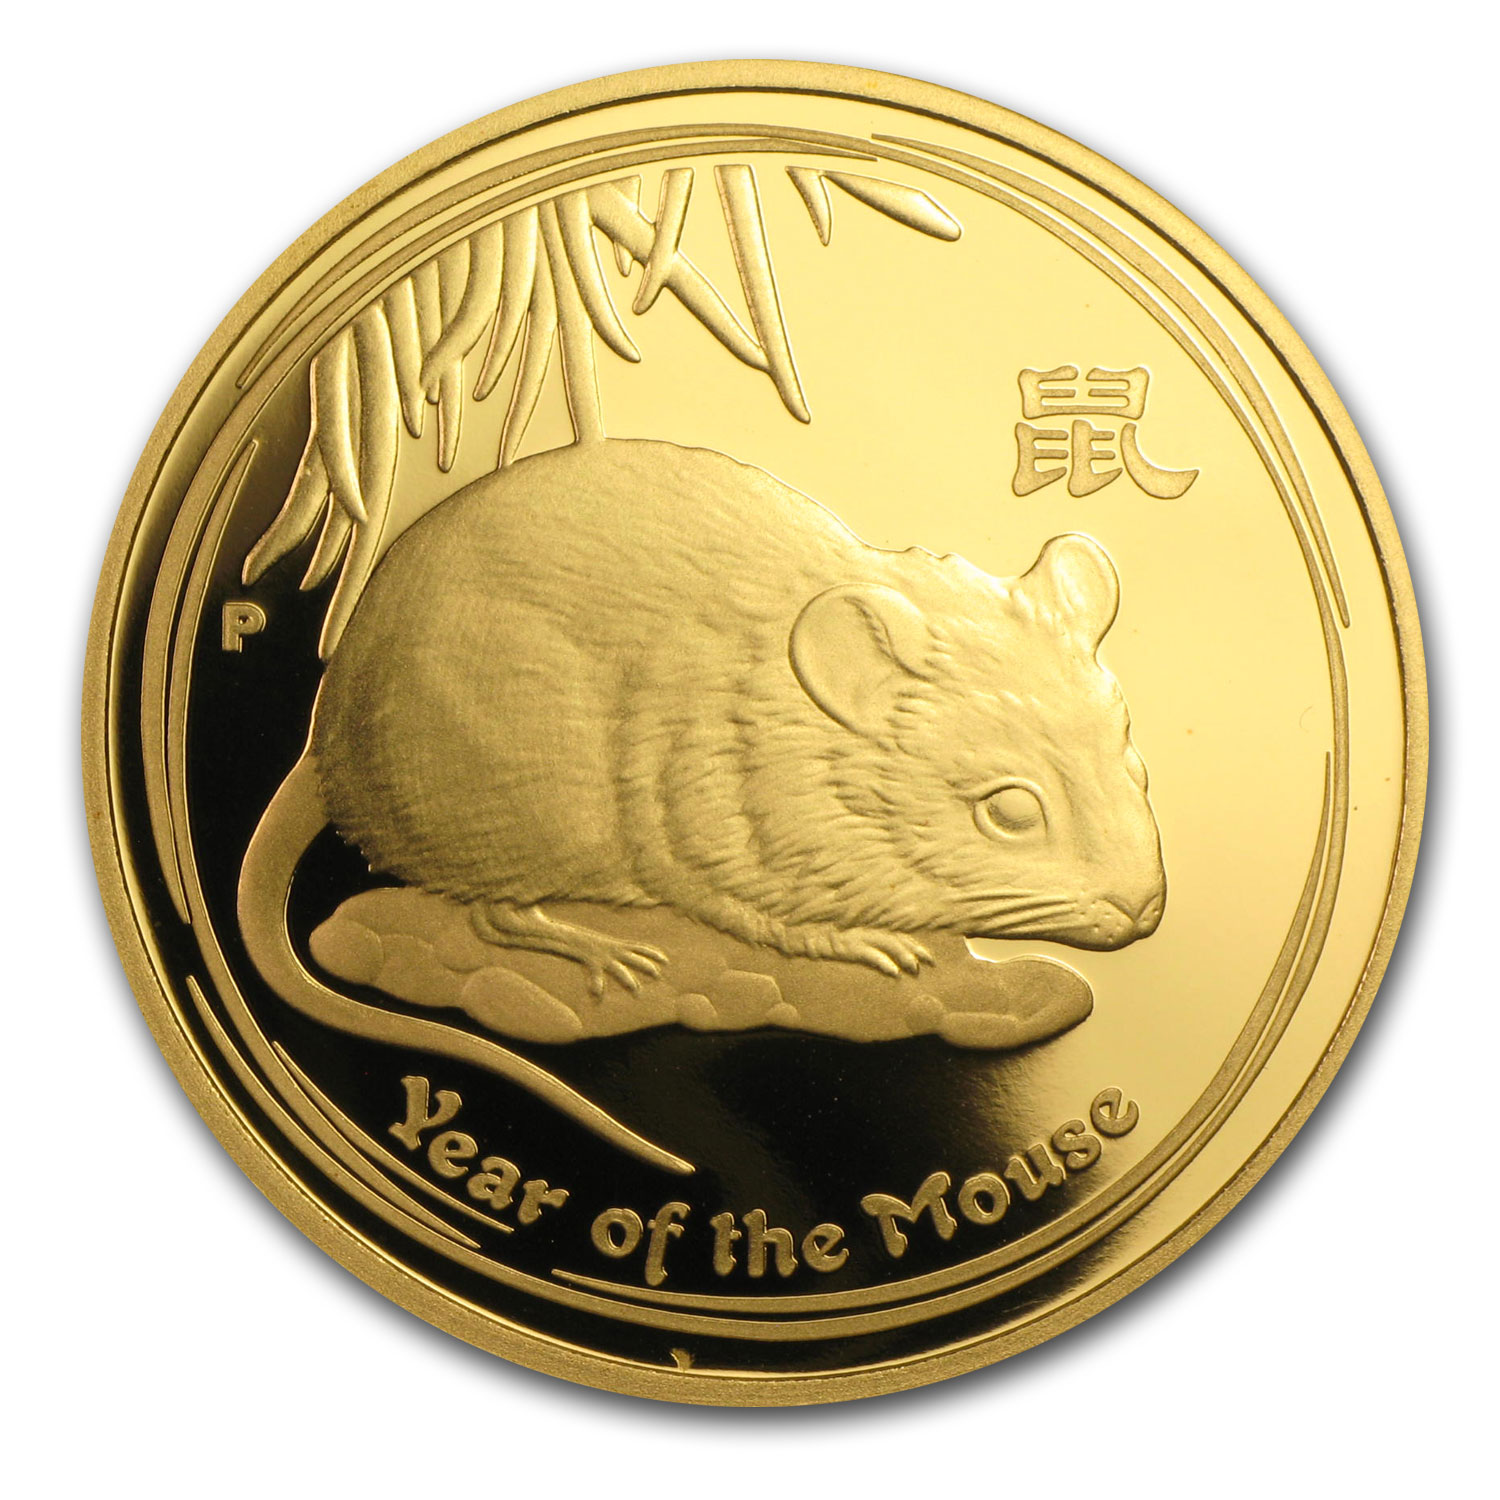 2008 Gold 1 oz Lunar Year of the Mouse Proof (Series II)